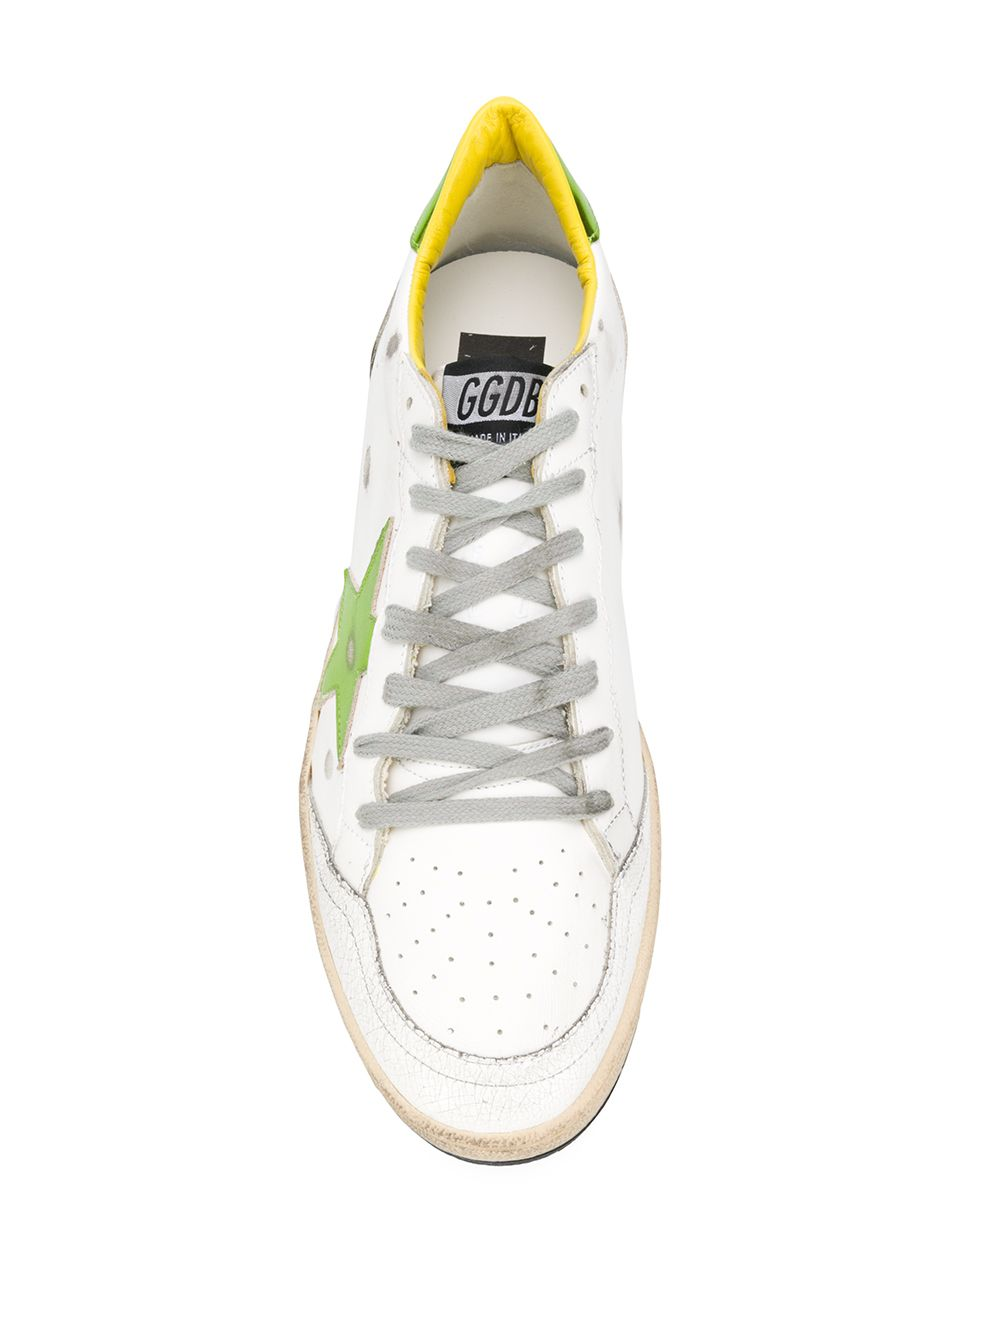 Picture of Golden Goose Deluxe Brand   Ball Star Sneakers